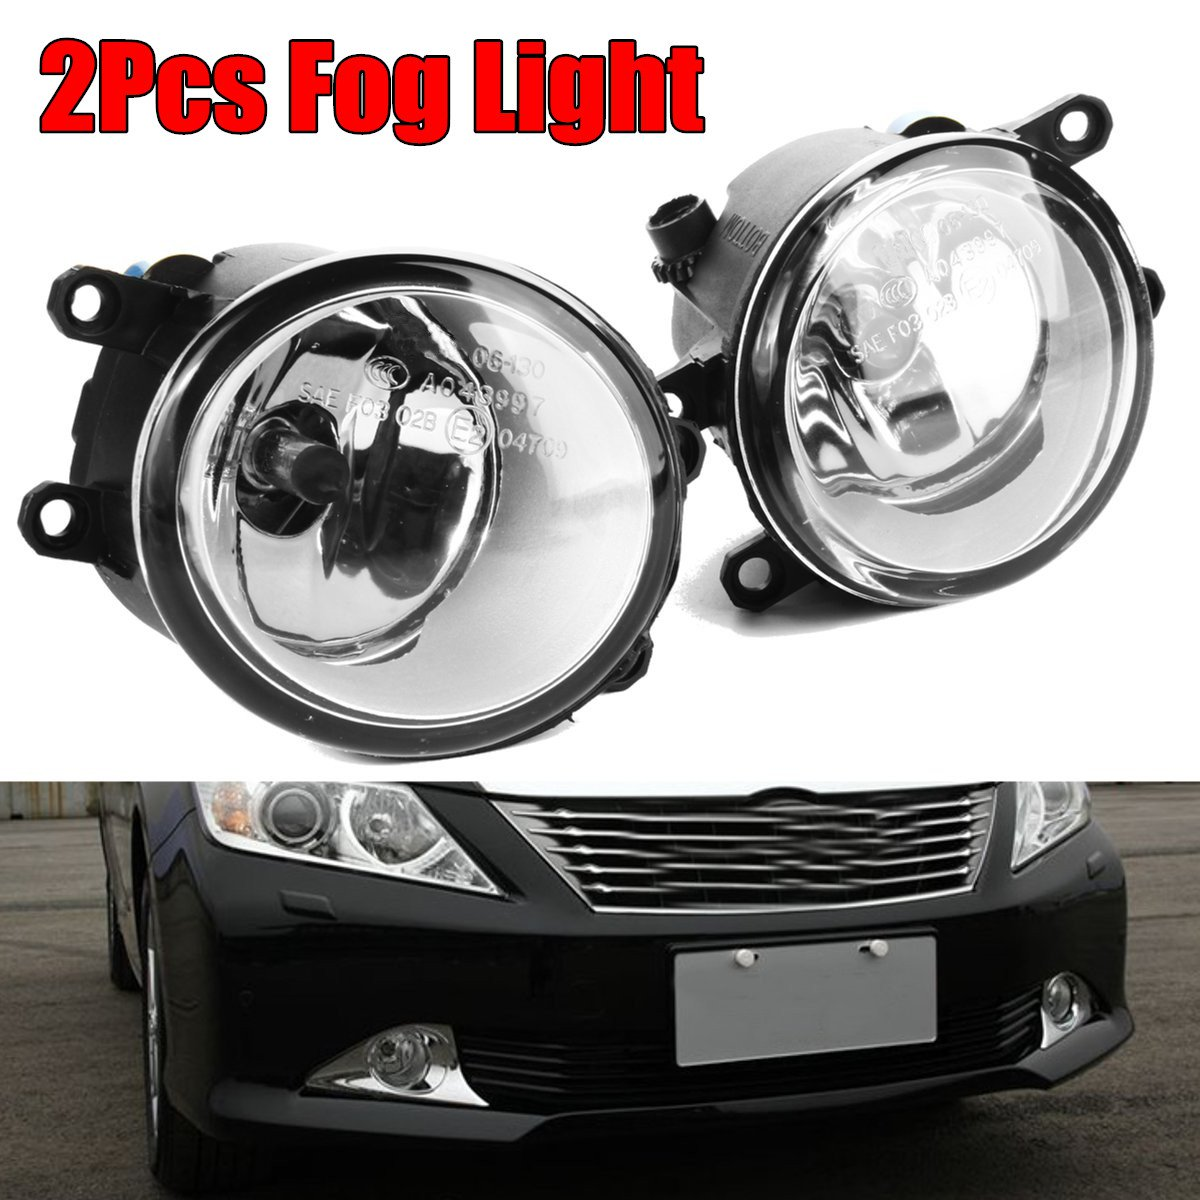 1 Pair Of Clear Fog Light Driving Lamp For TOYOTA CAMRY COROLLA TACOMA MATRIX YARIS 1set front chrome housing clear lens driving bumper fog light lamp grille cover switch line kit for 2007 2009 toyota camry